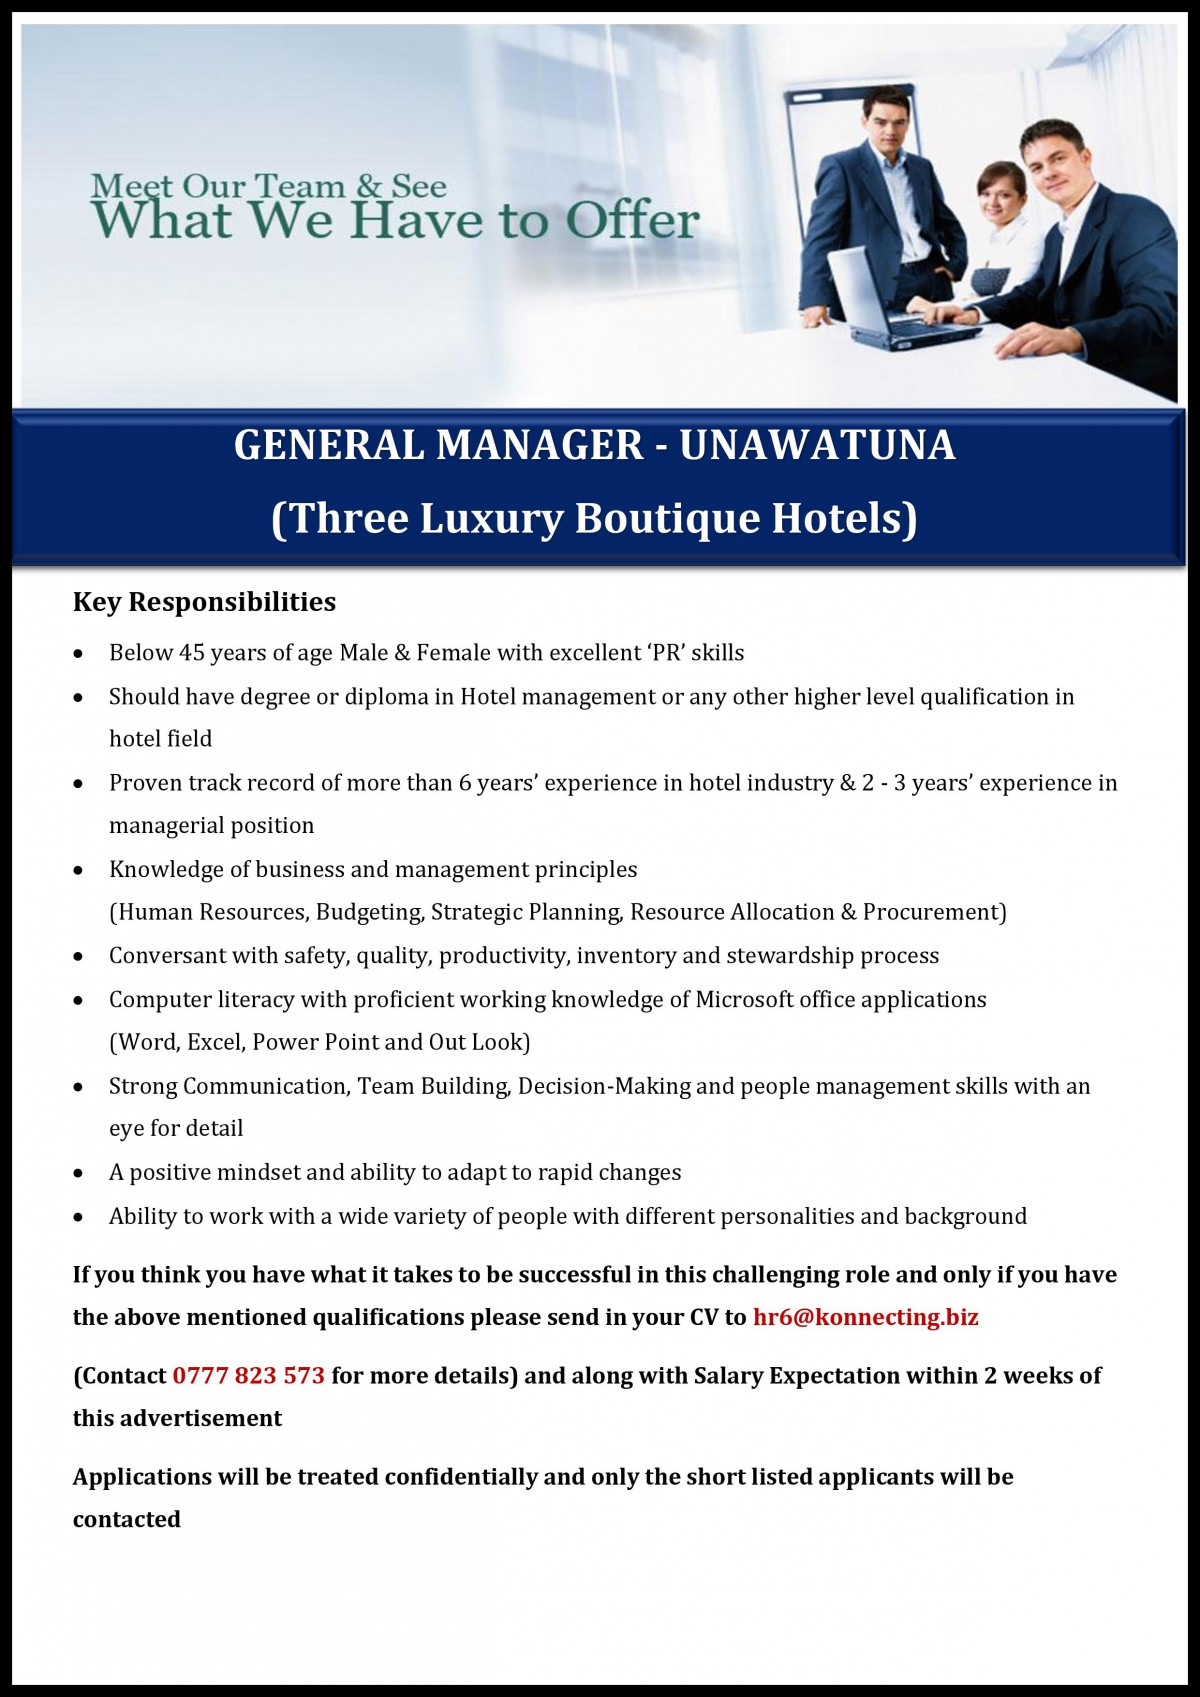 Key Requirements Below 45 Years Of Age Male Female With Excellent Pr Skills Should Have Degree Or Diploma In Hotel Management Any Other Higher